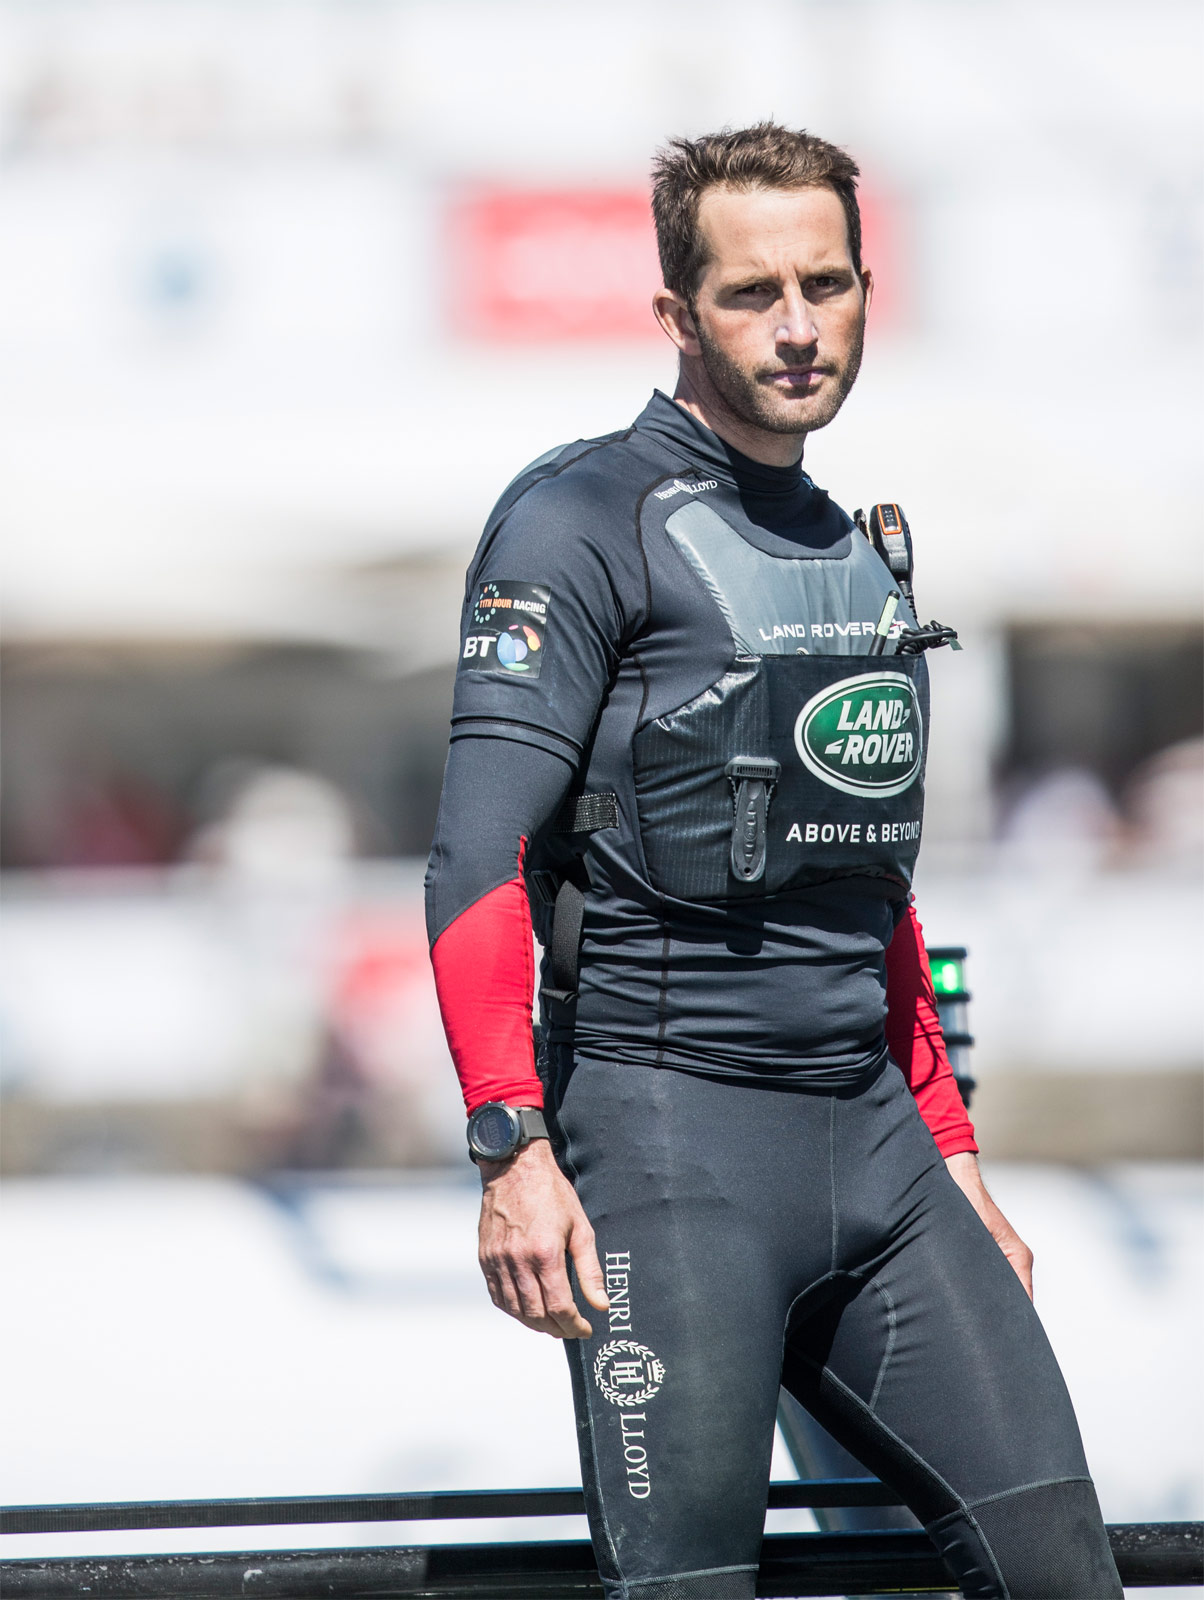 Home Victory For Sir Ben Ainslie's Sailing Team And Land Rover BAR 8